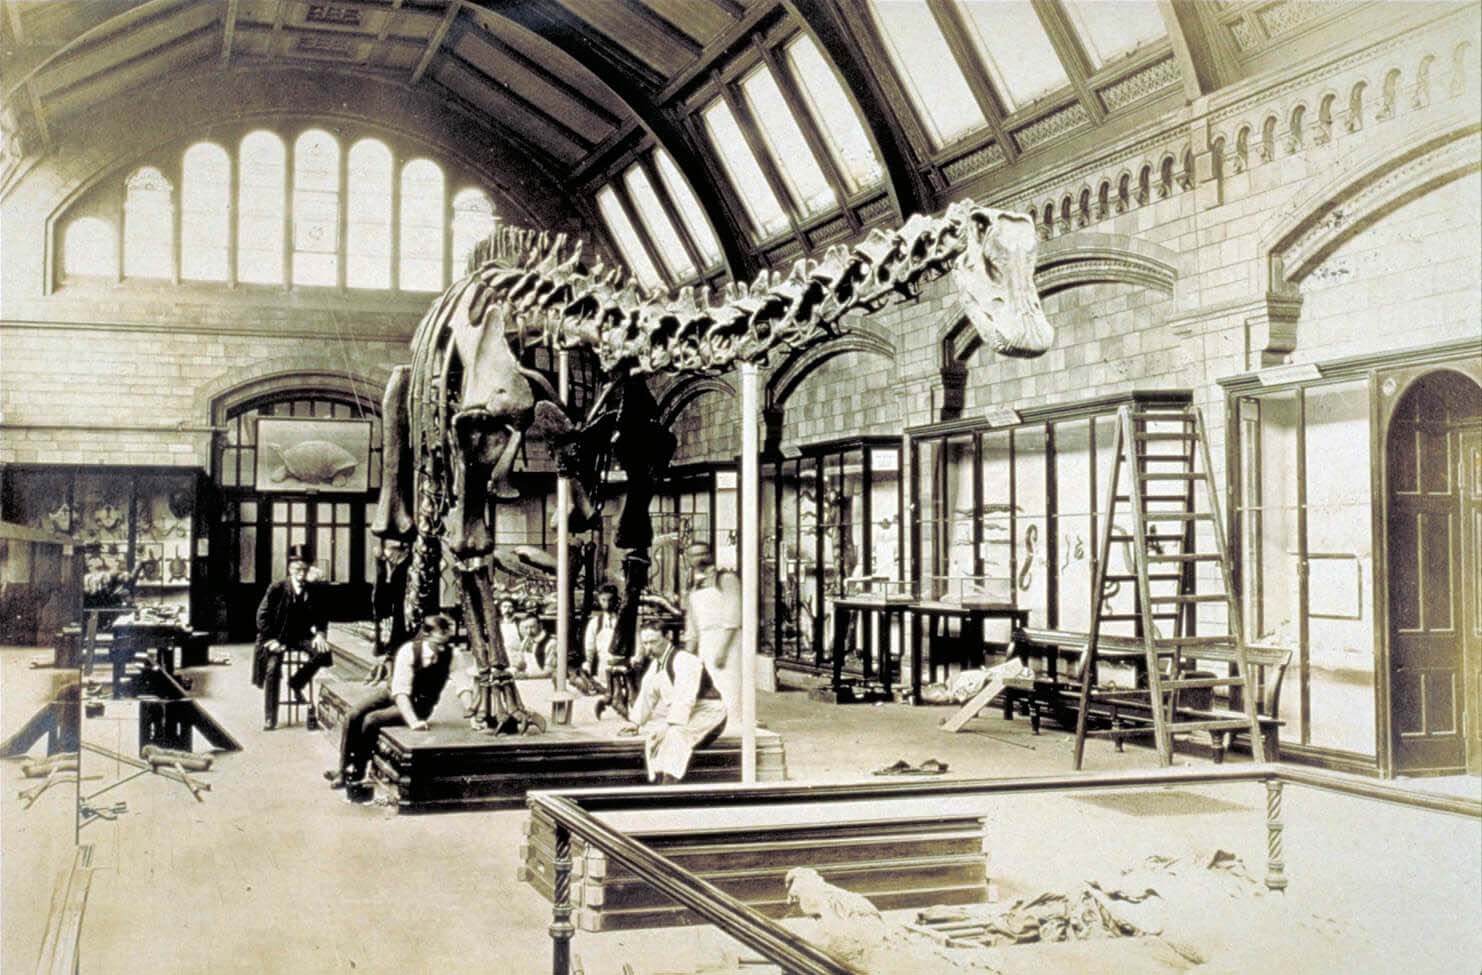 a black and white photo of a large dinosaur skeleton in a museum gallery